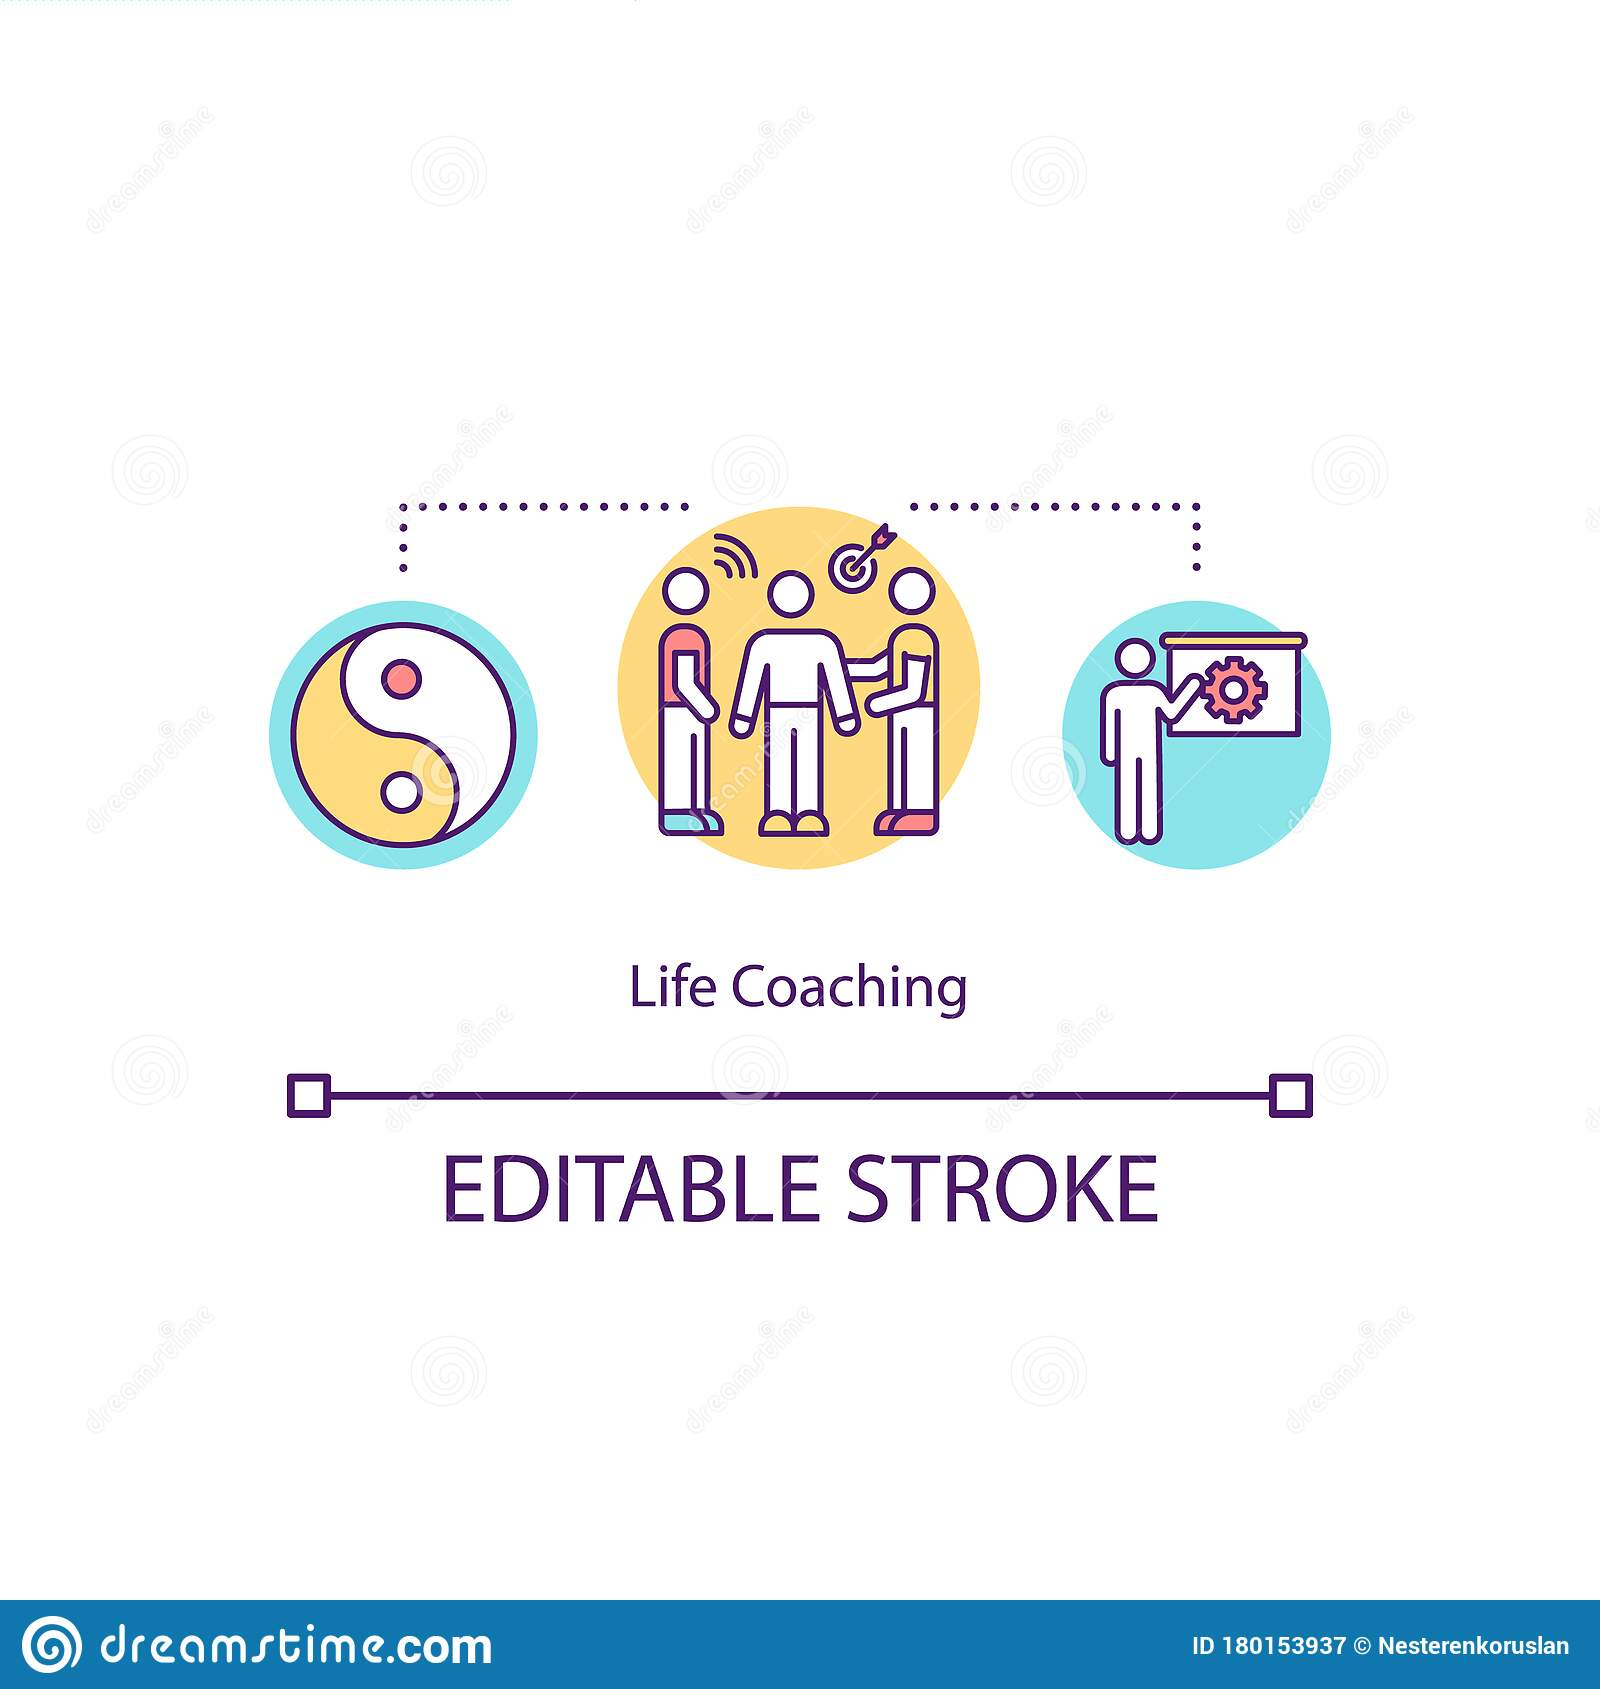 Life coaching concept icon stock vector. Illustration of expert ...